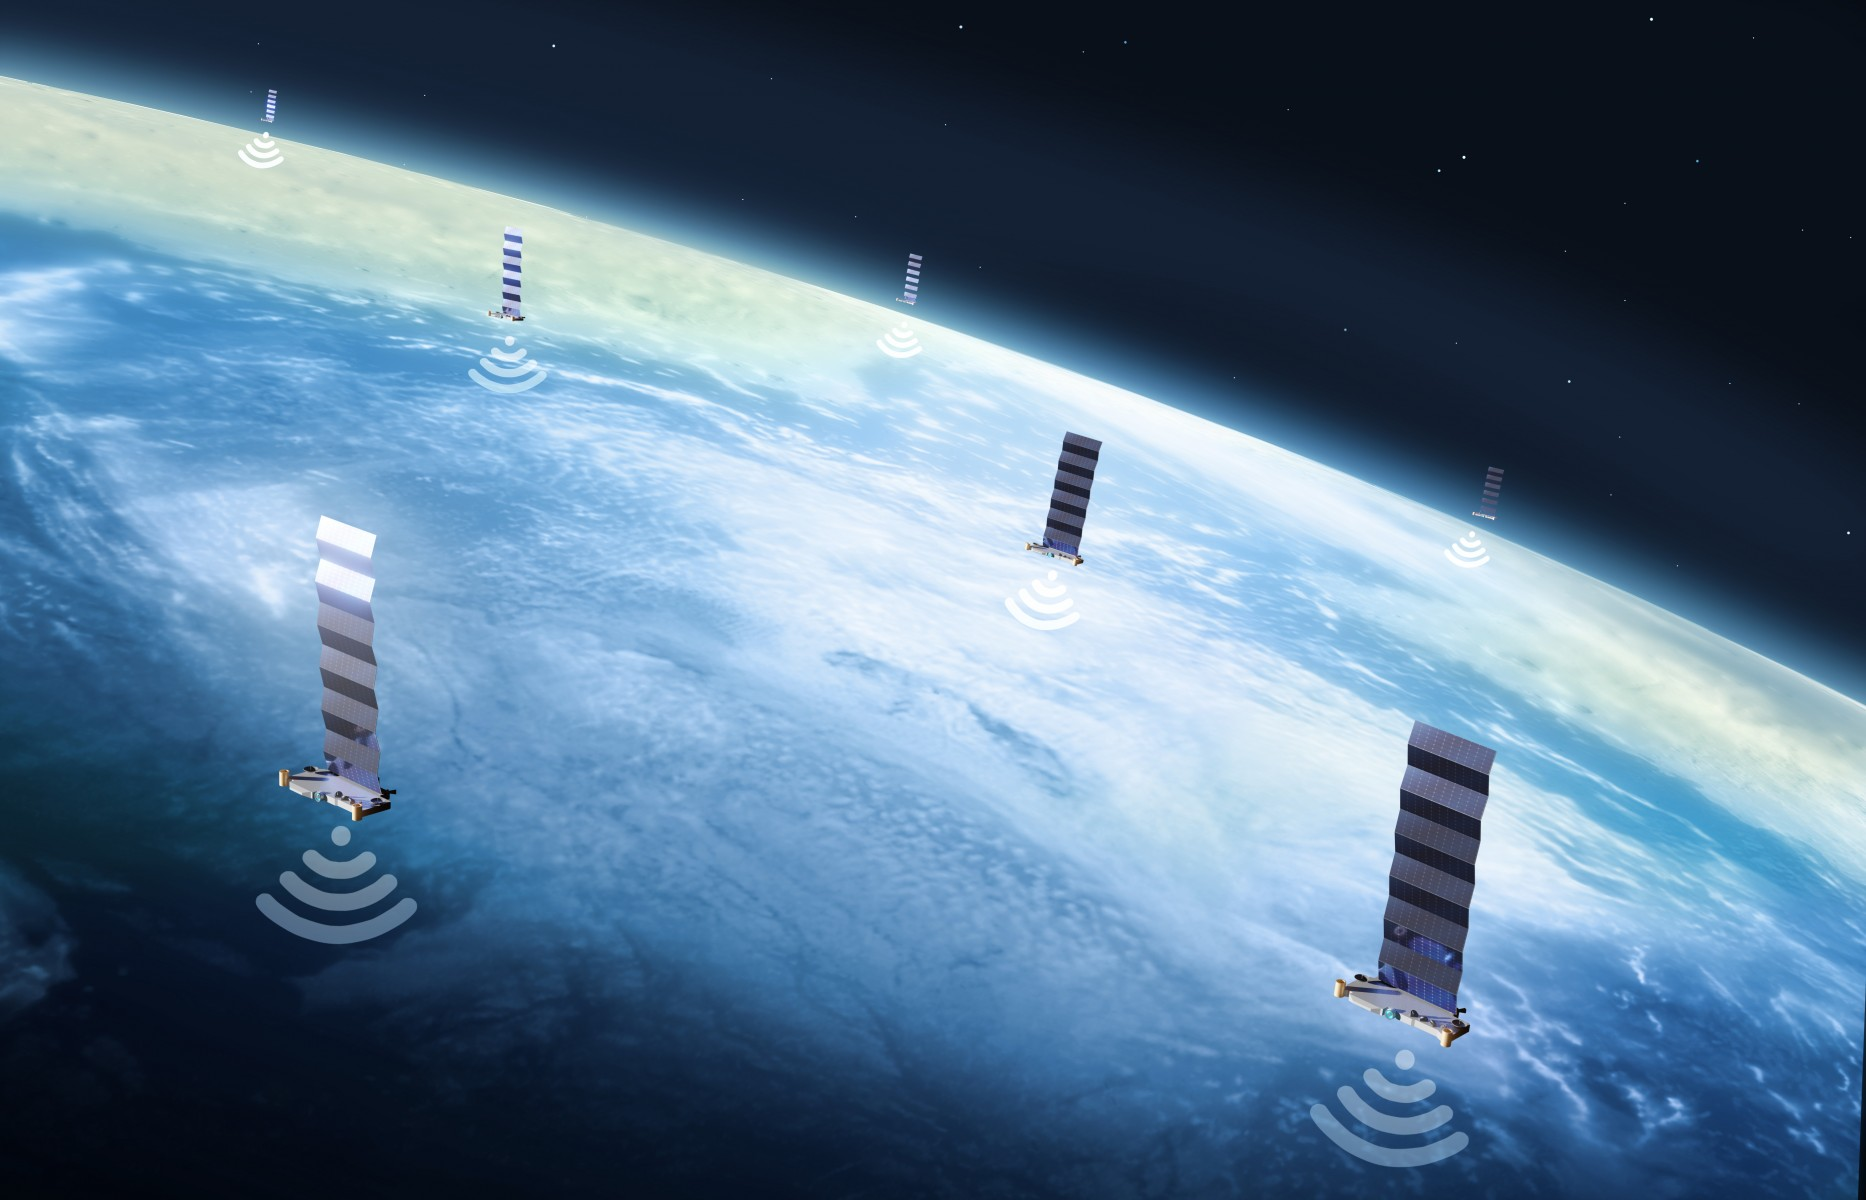 SpaceX satellite signals used like GPS to pinpoint location on Earth